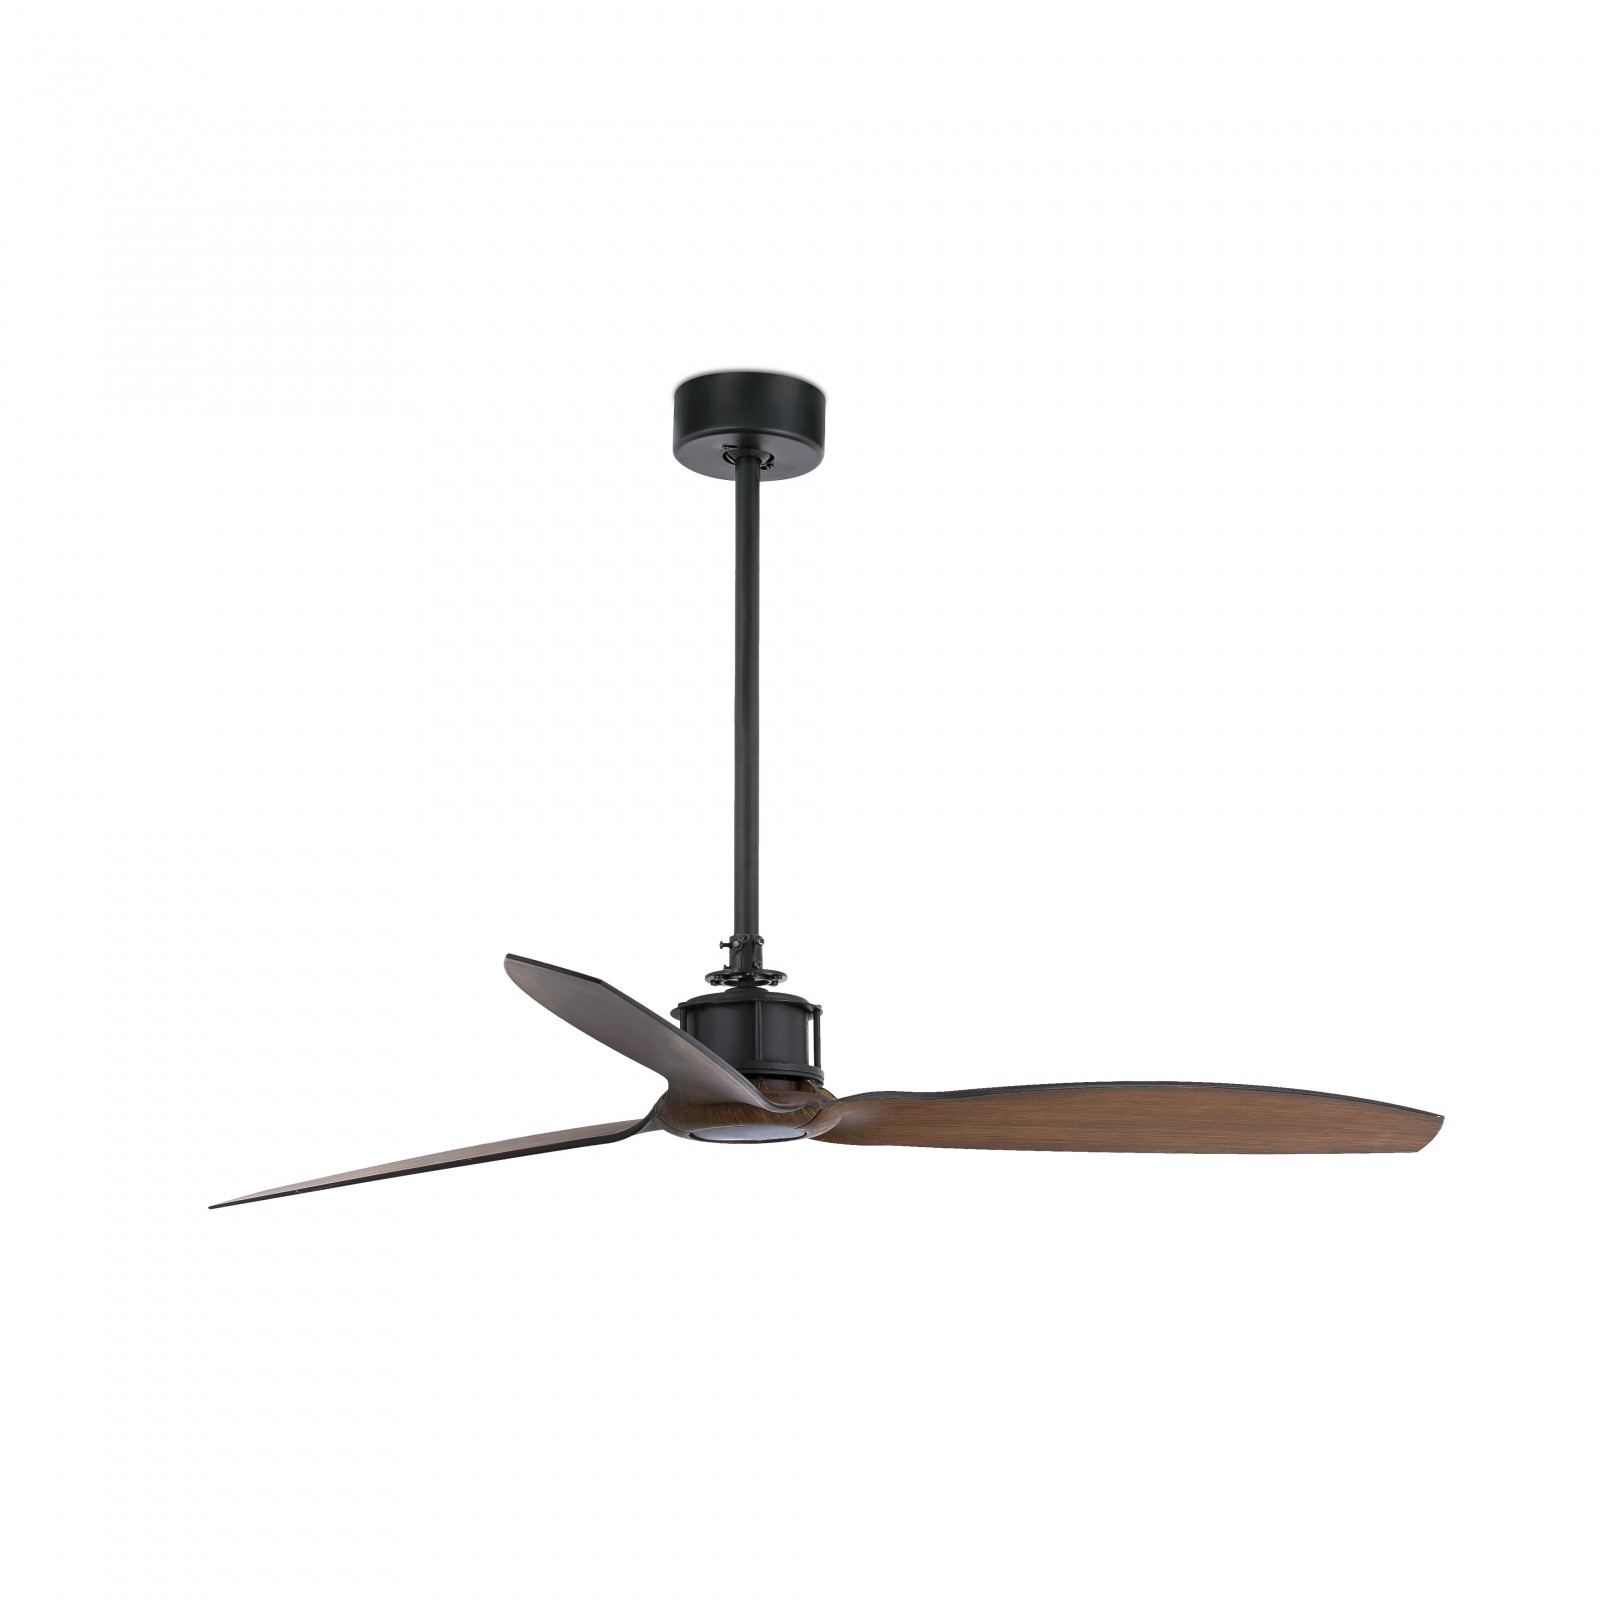 Faro energy saving ceiling fan Just Fan black with remote control